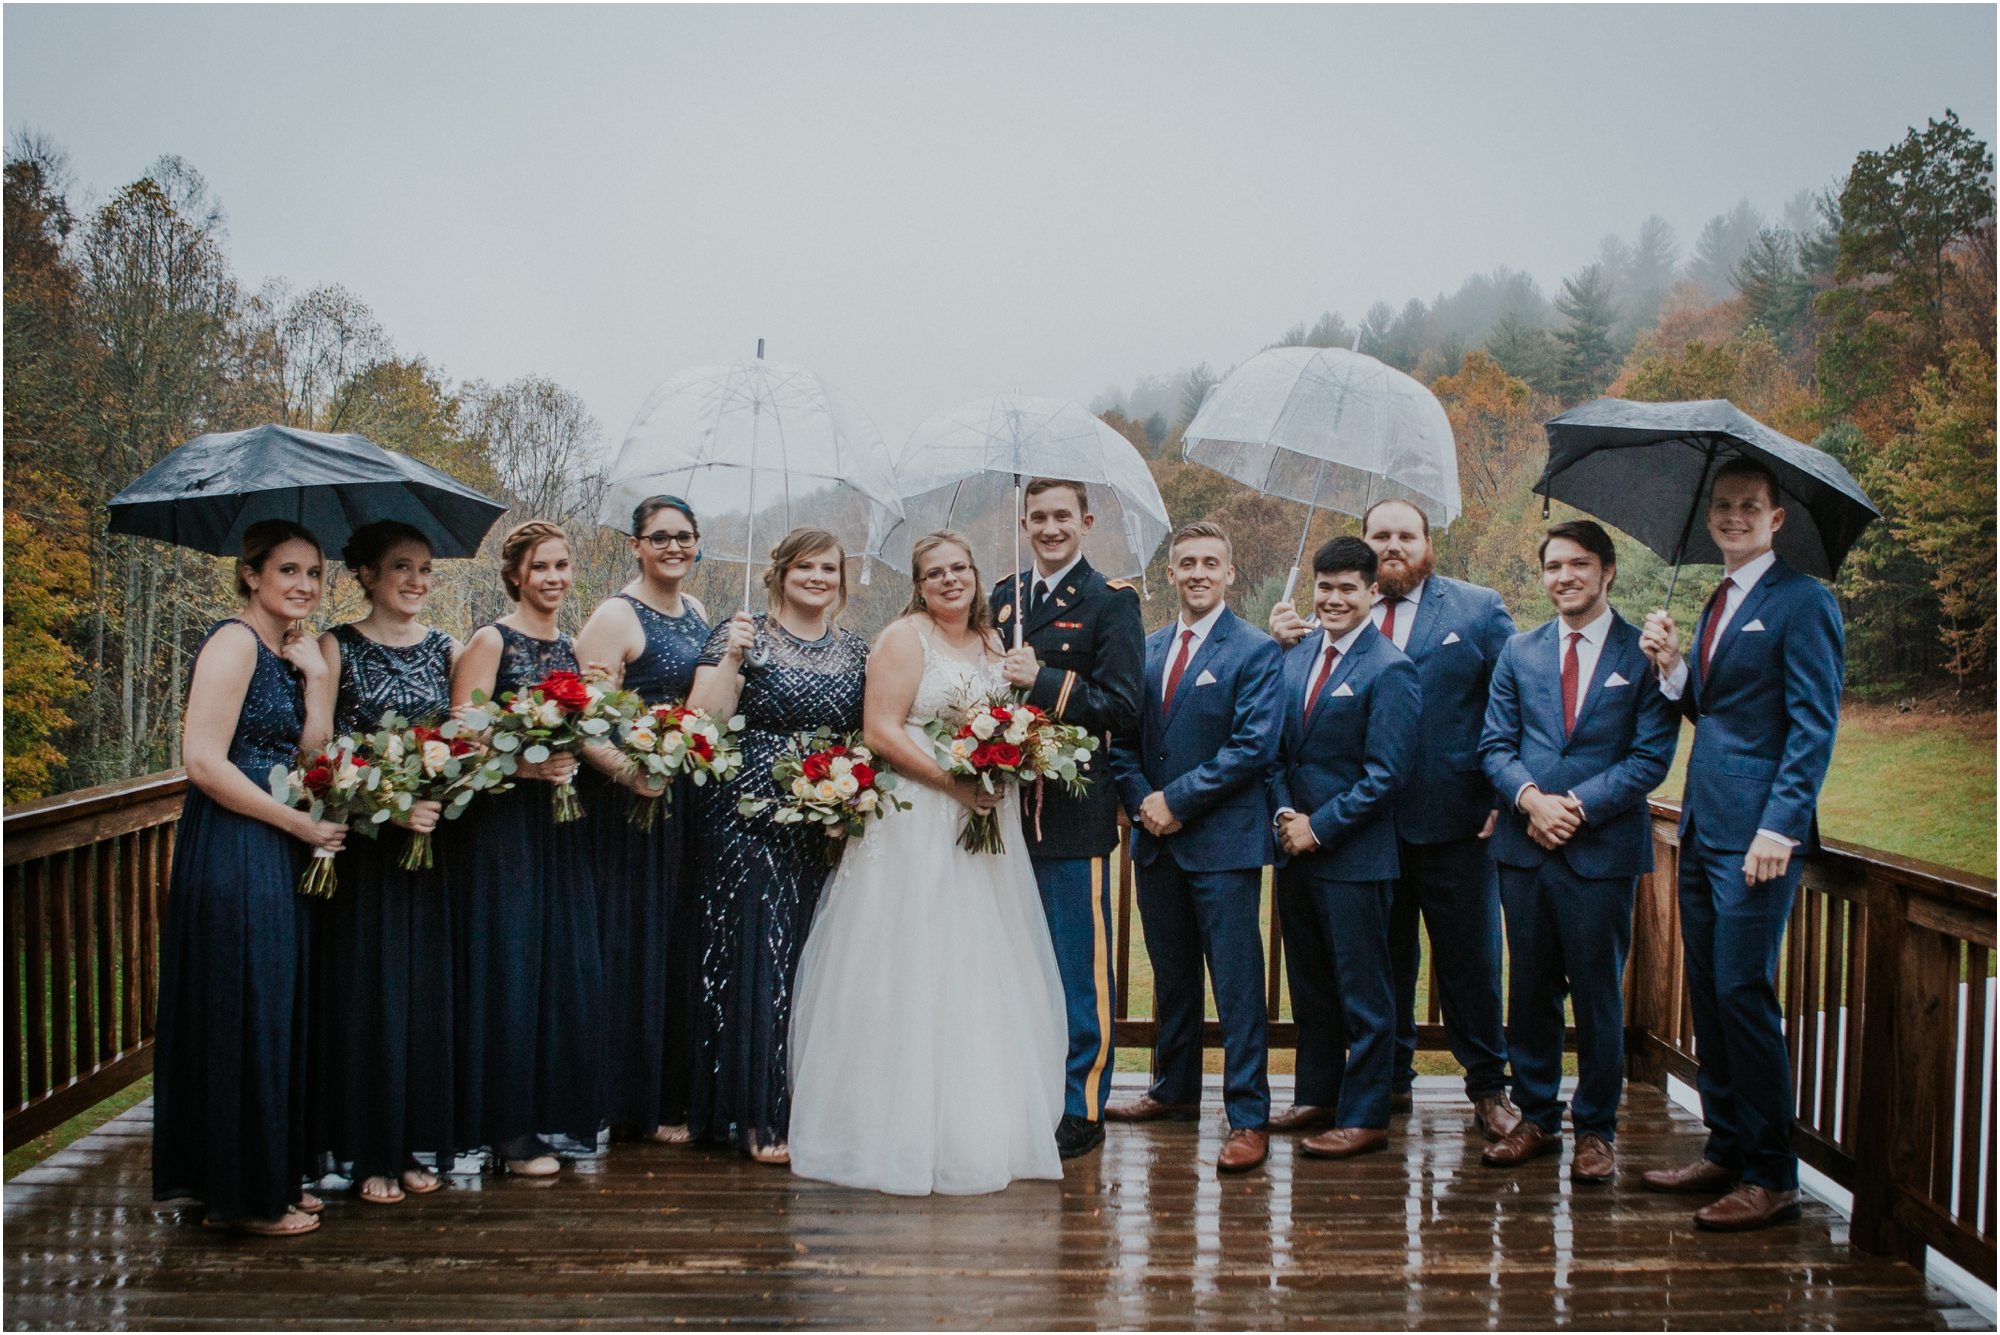 Sugar-Hollow-Retreat-Butler-Elizabethton-Tennessee-Rustic-Rainy-Wedding-Adventurous-Couple_0153.jpg